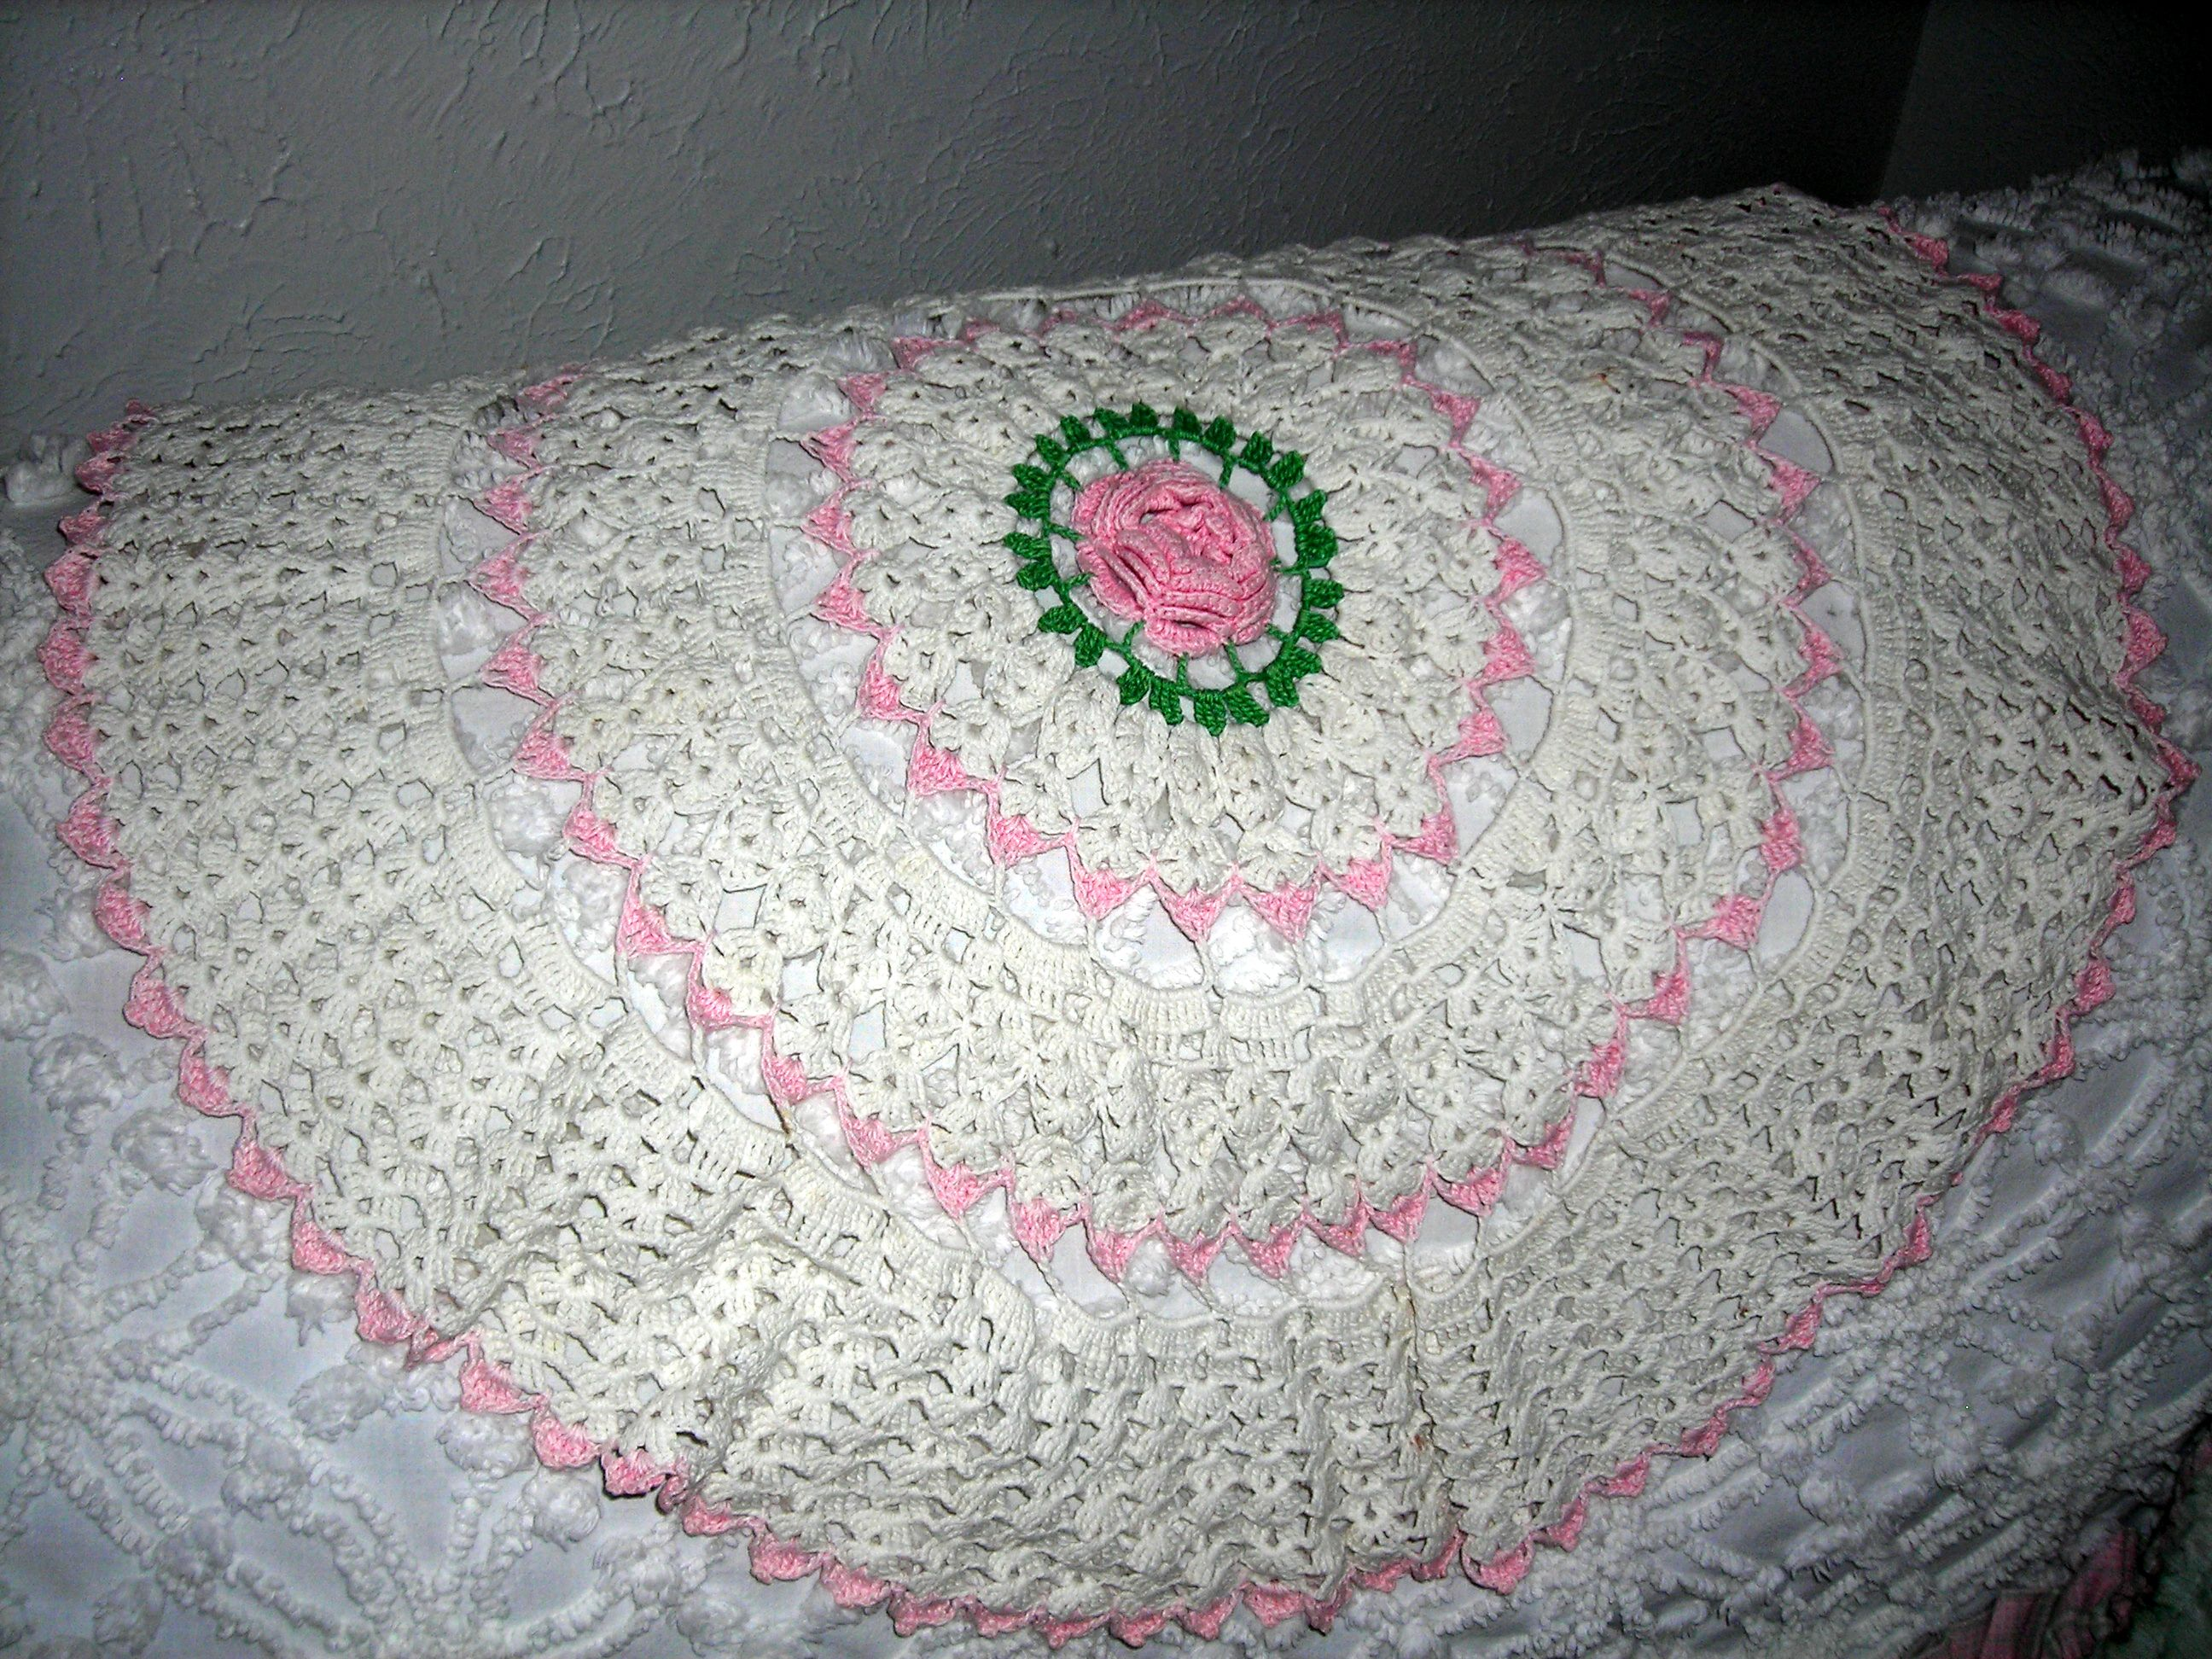 LOVELY crotcheted doily (from Sue's booth, natch)